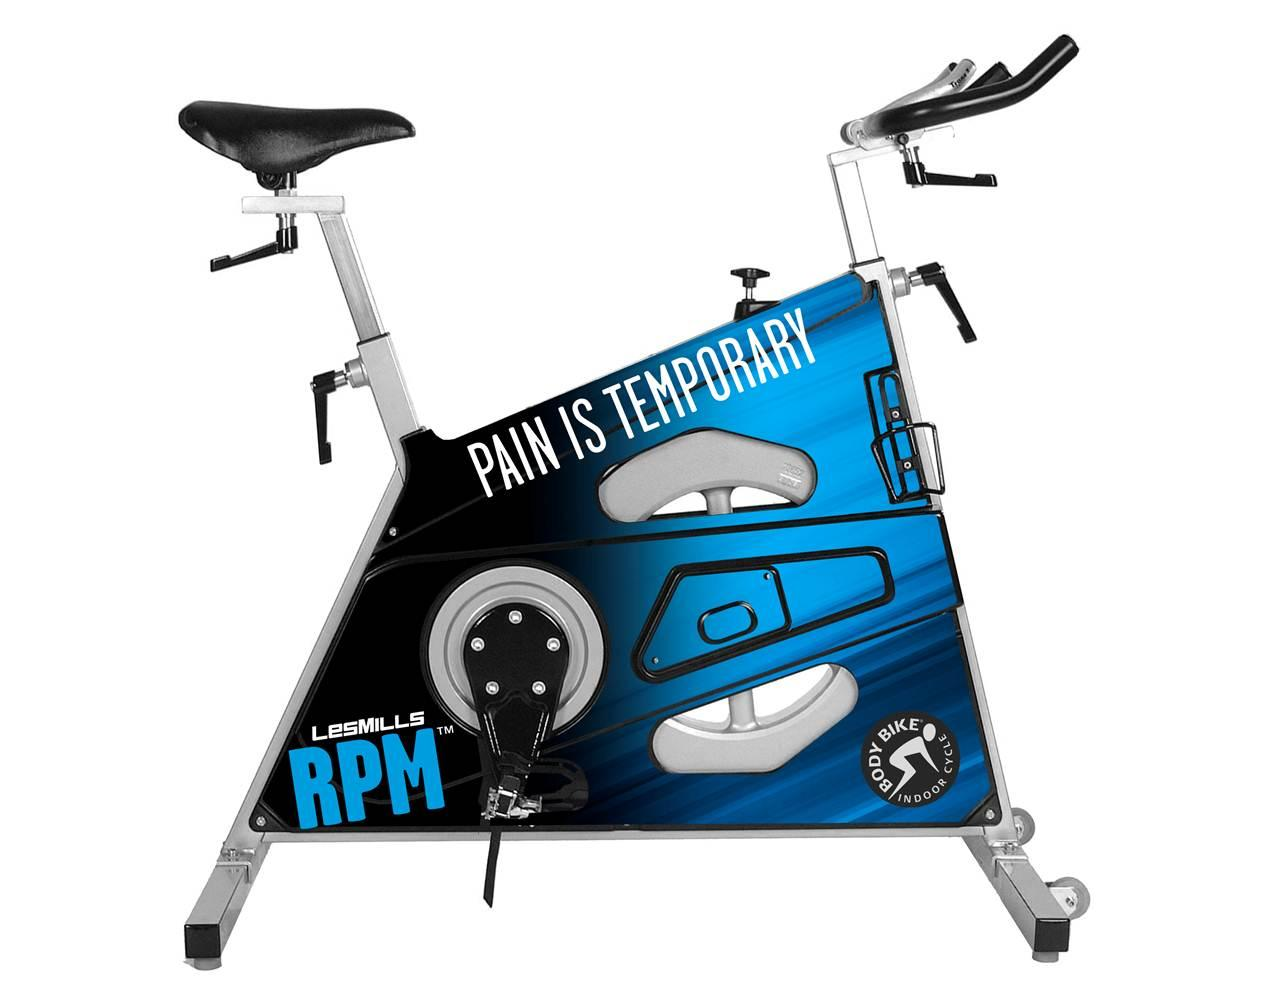 Body Bike Classic Les Mills Rpm Edition Indoor Cycling